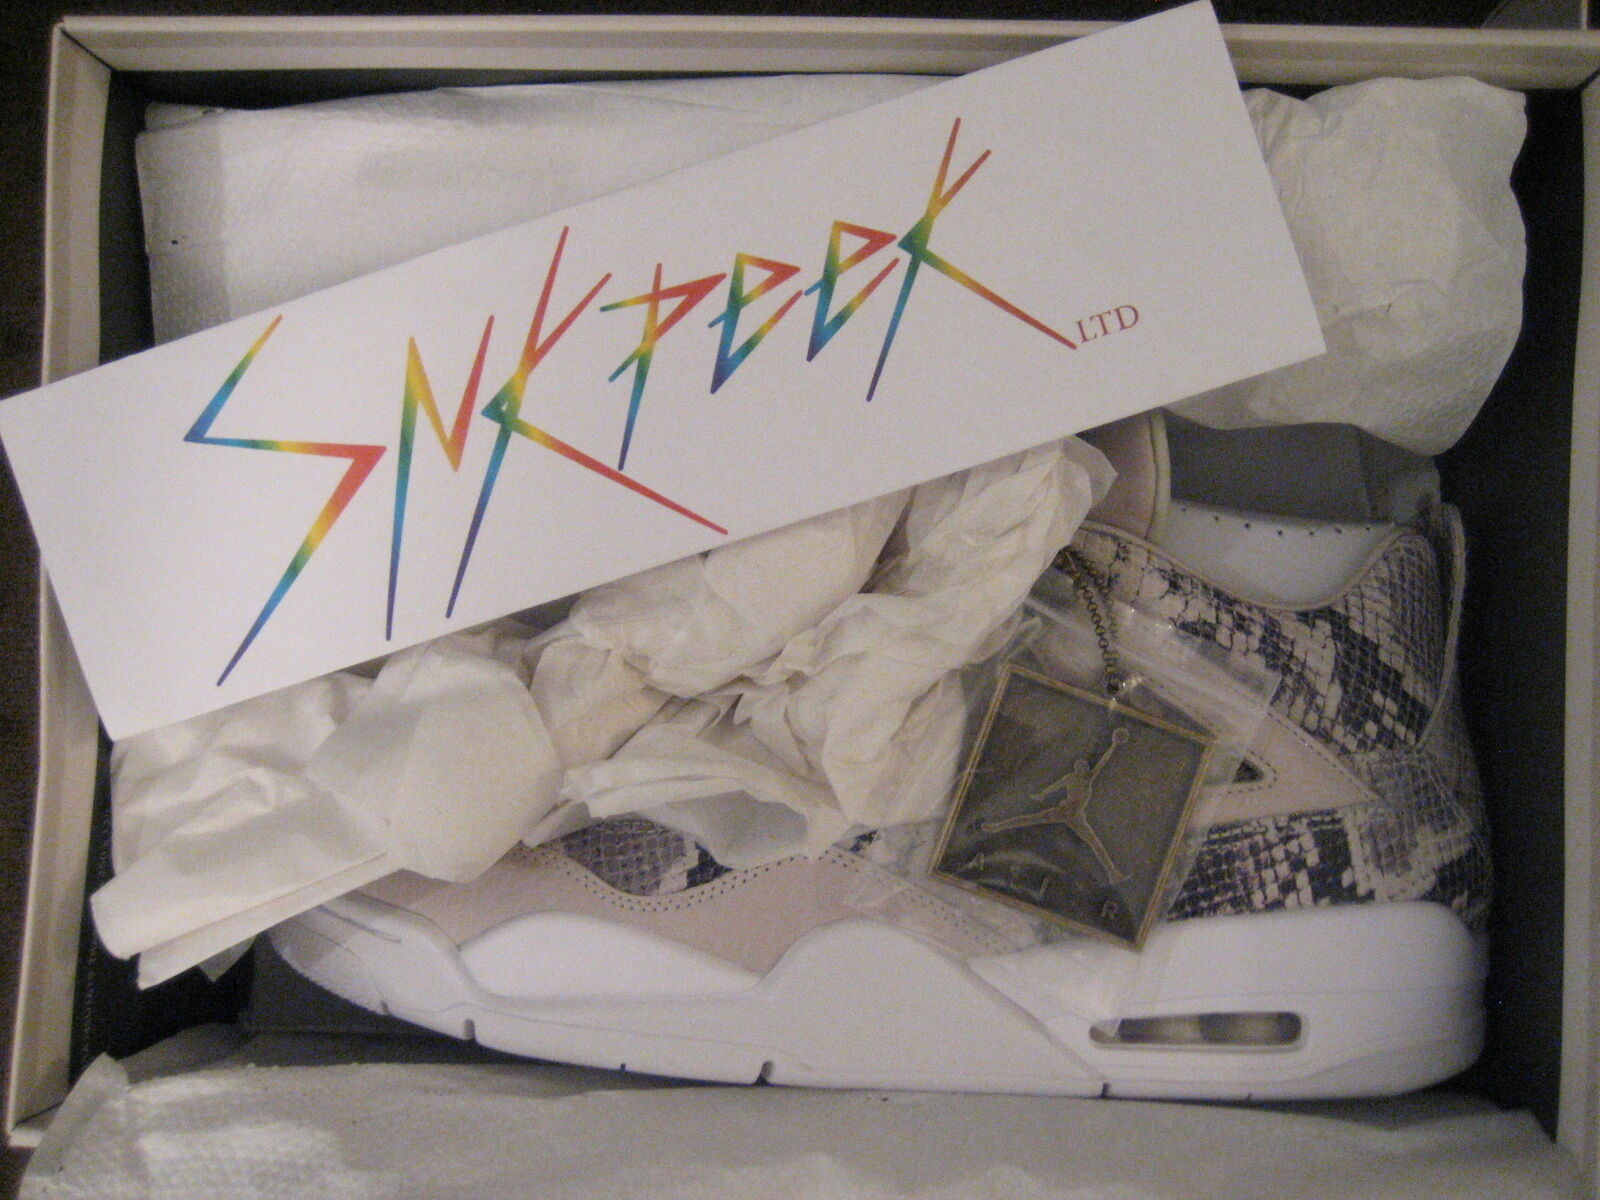 NEW Nike Air Jordan Retro 4 Premium Pinnacle Snakeskin 819139-030 DS US 12 New shoes for men and women, limited time discount